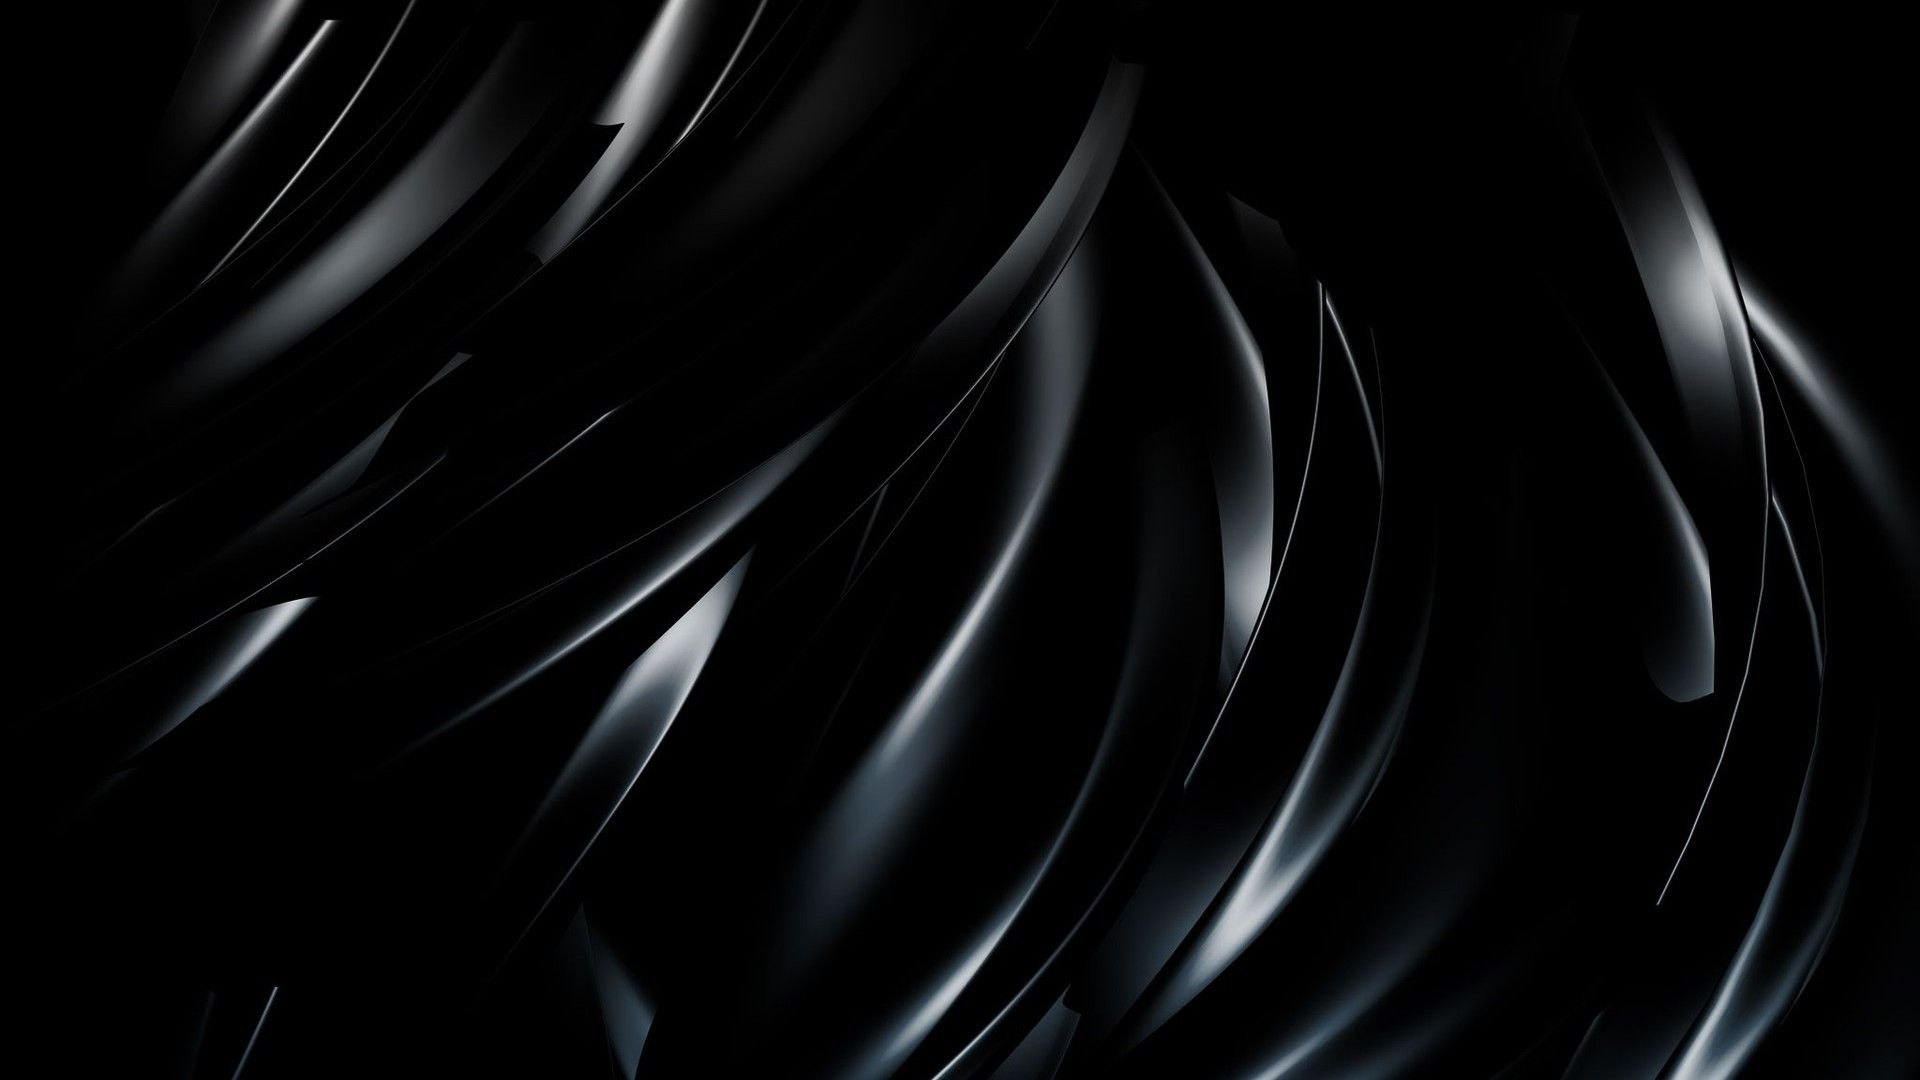 Black Wallpapers HD 1920x1080 Group (84+)